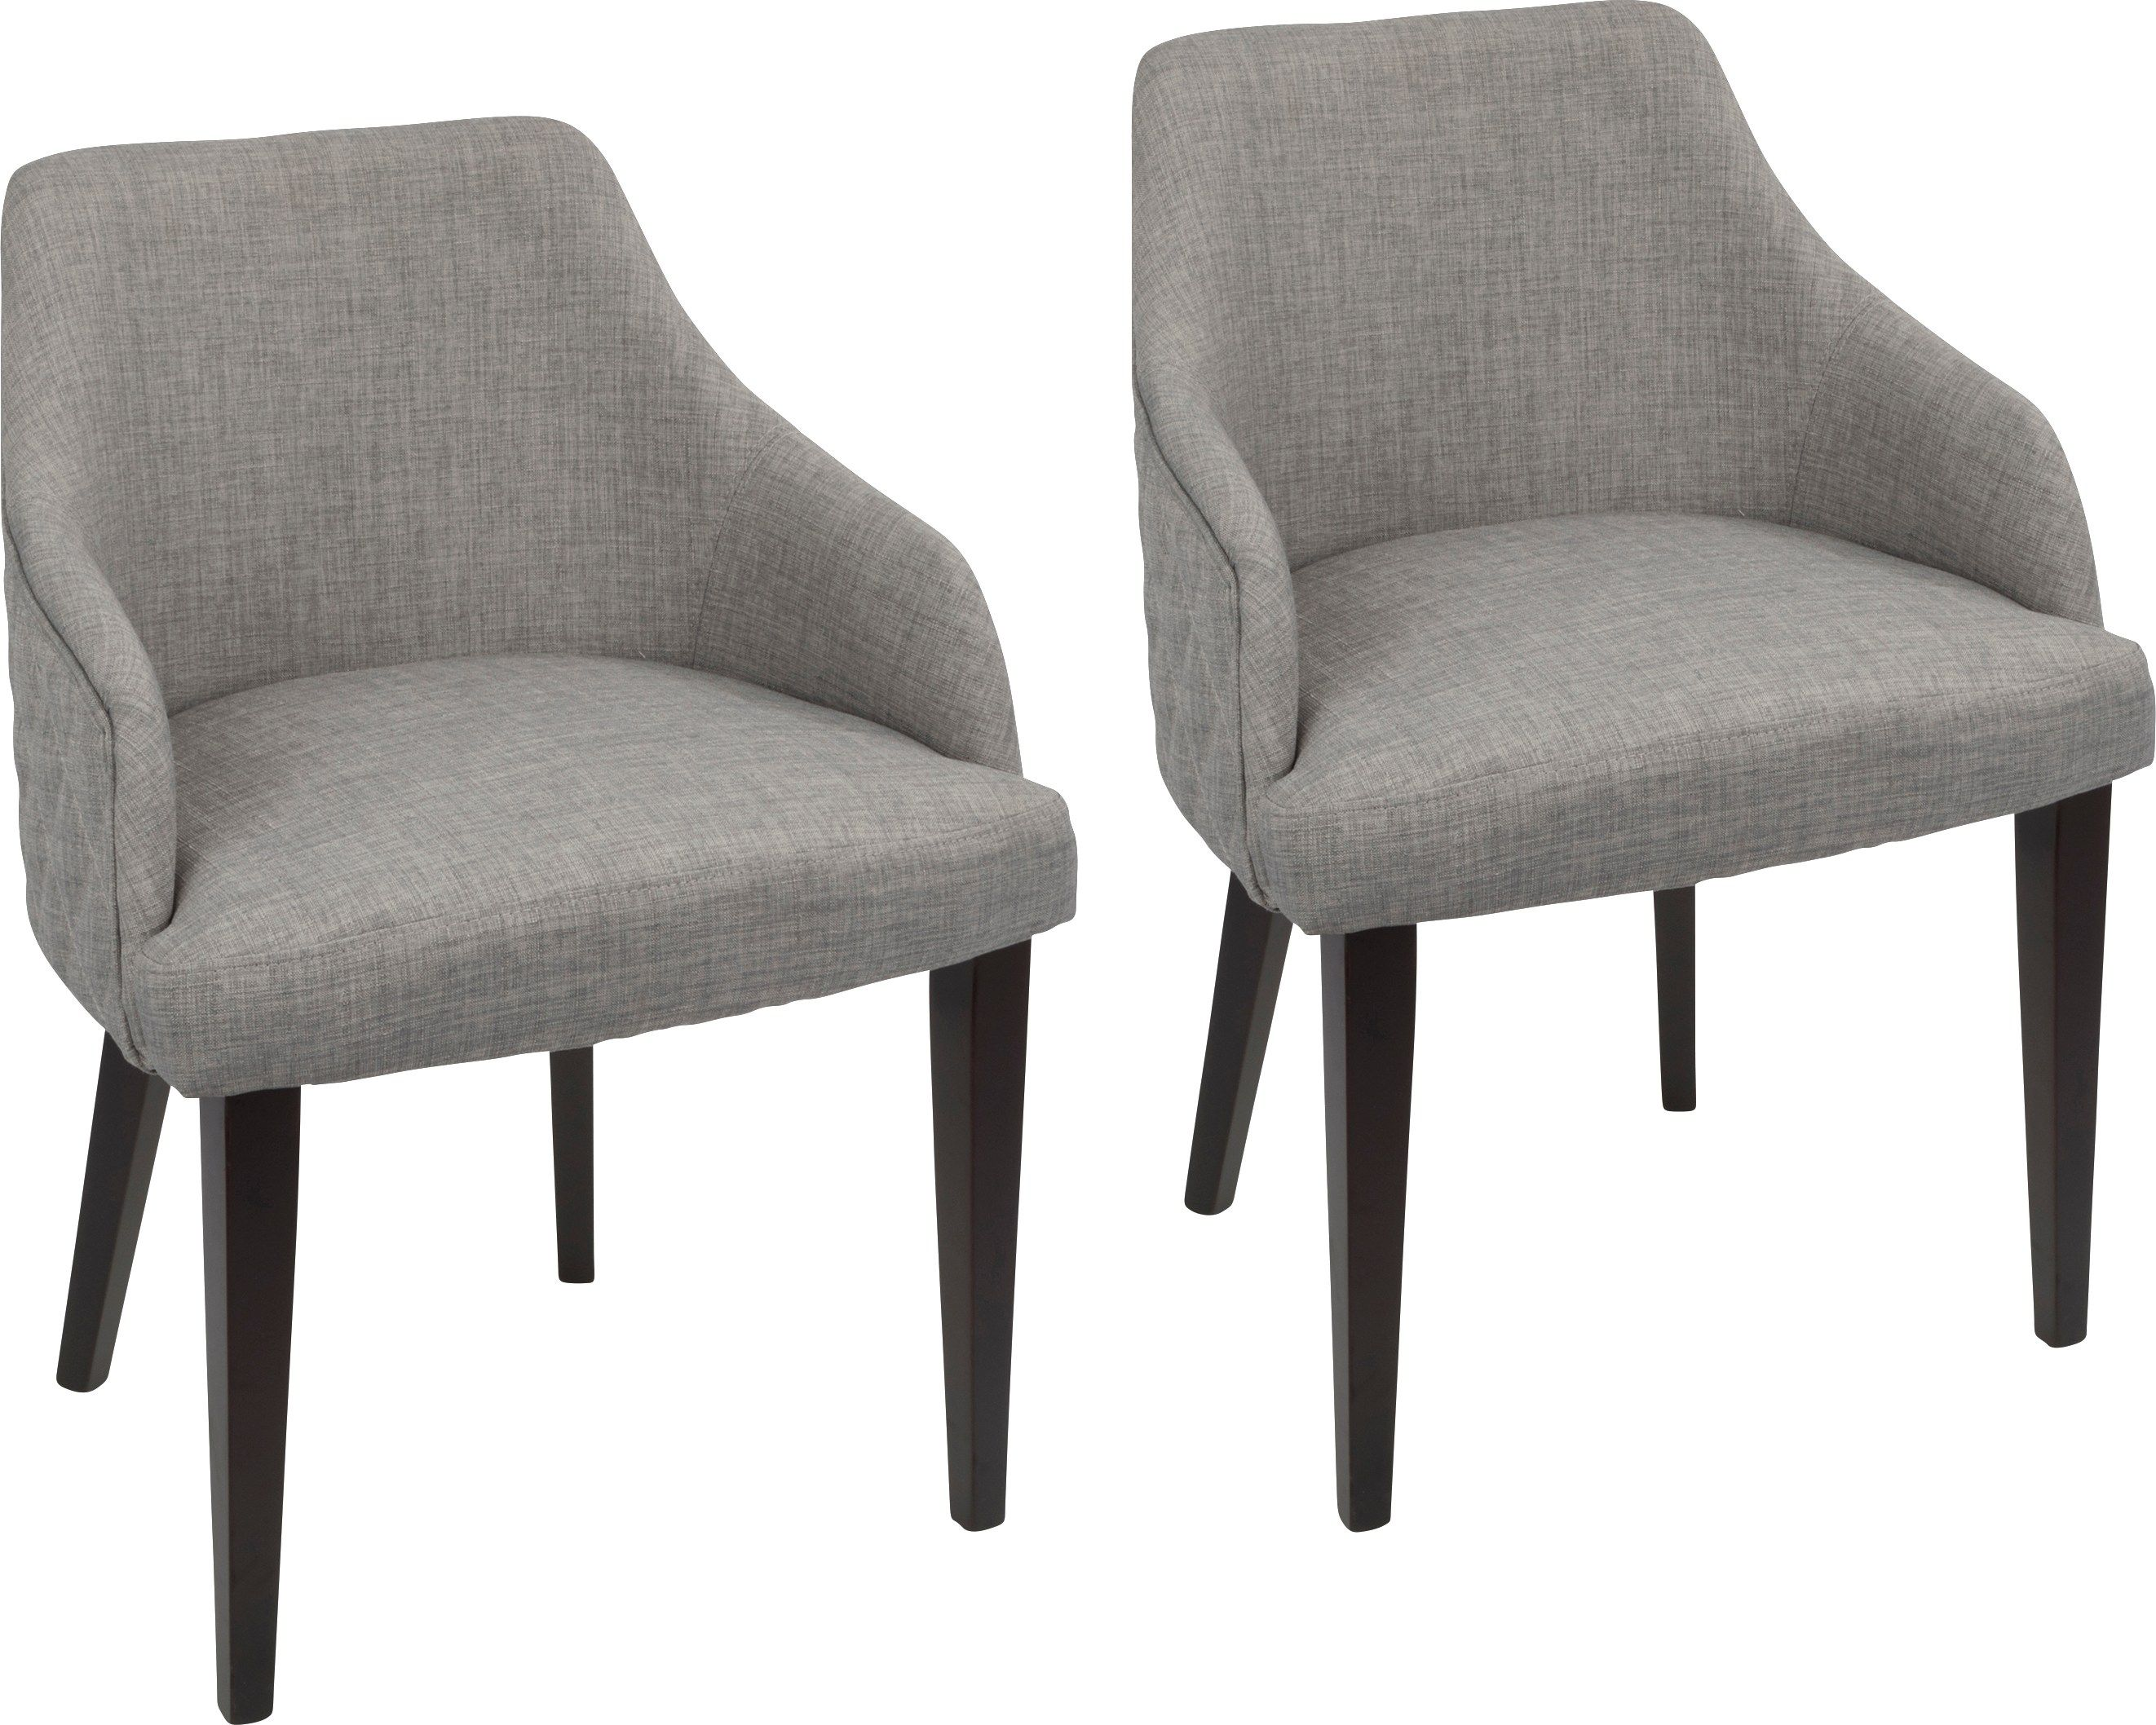 Fenley Gray Dining Chair Set Of 2 319 99 23w X 22 75d X 31h